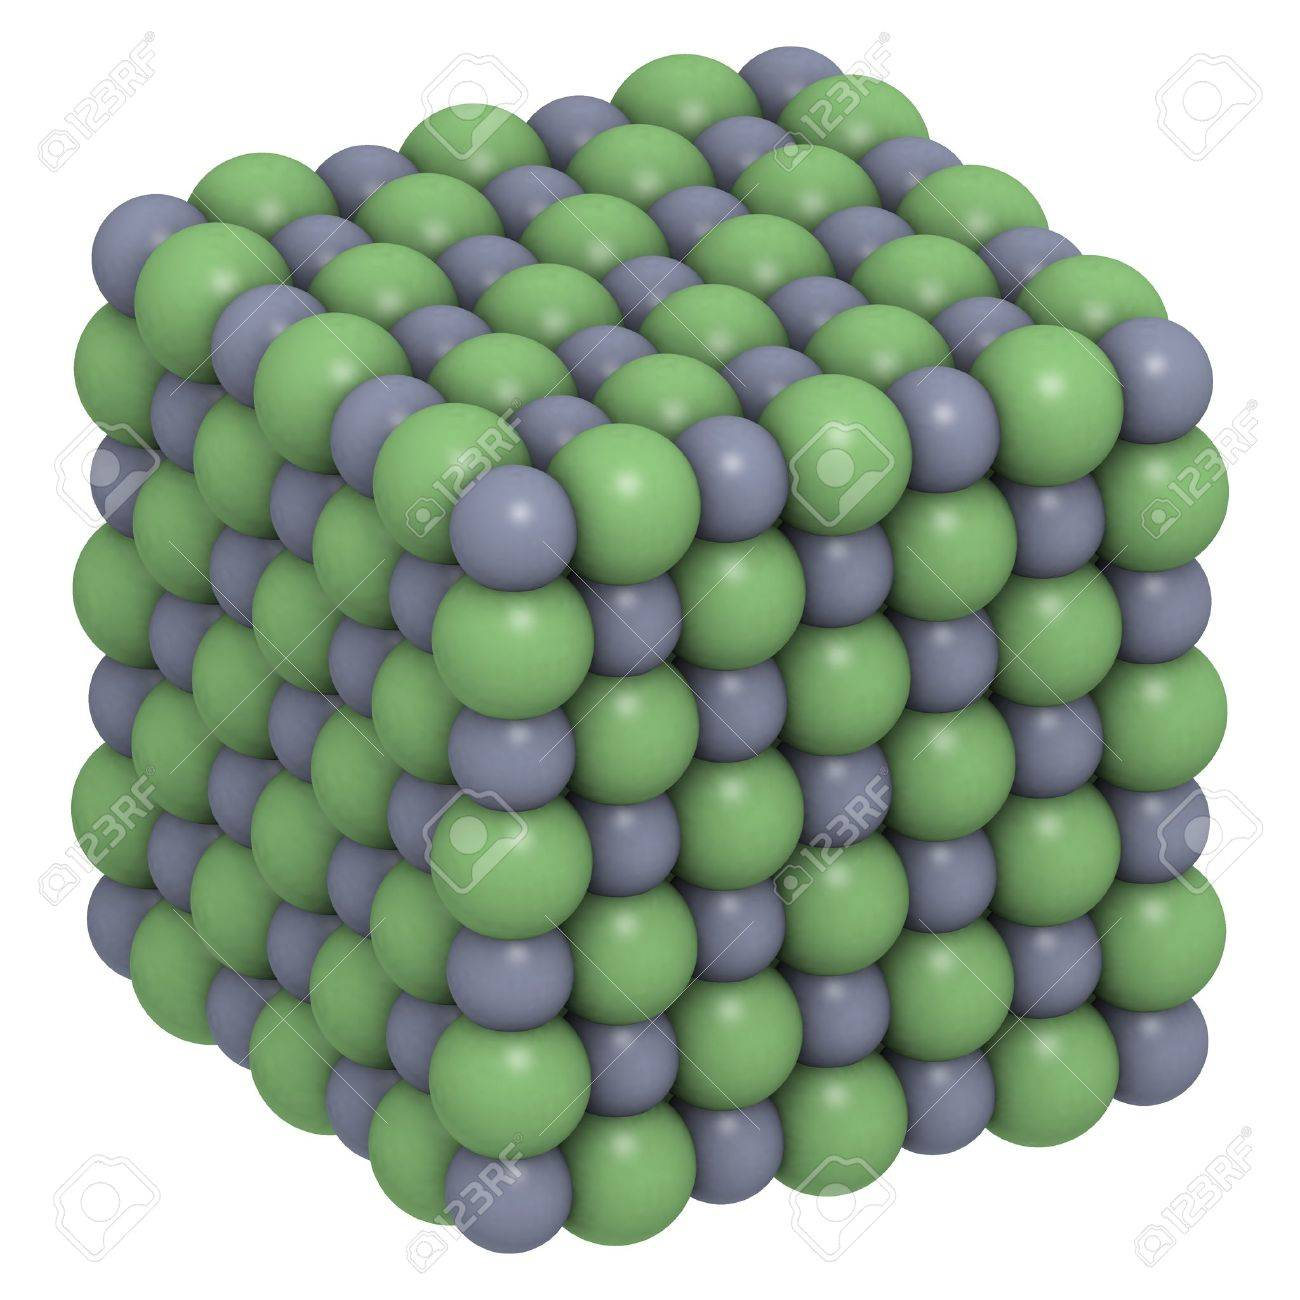 Sodium chloride (NaCl, table salt), crystal structure Stock Photo - 17236668